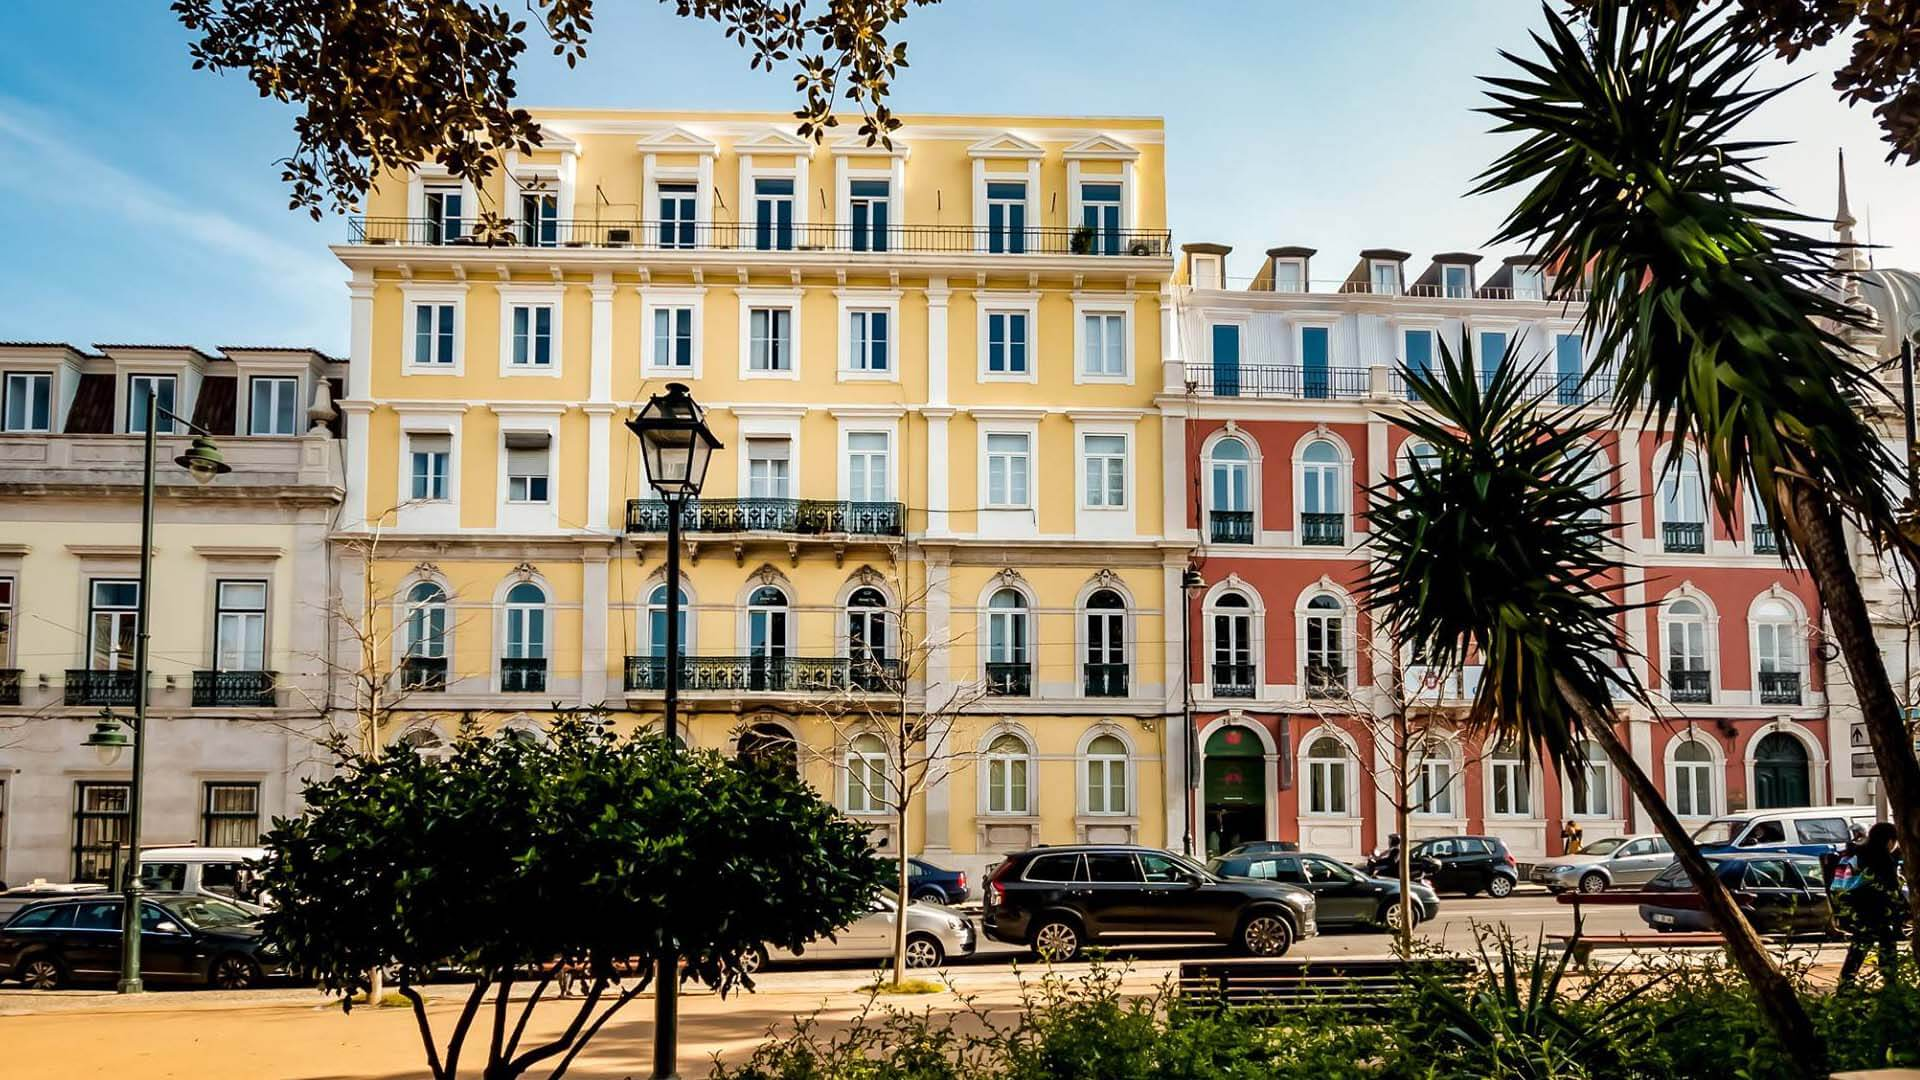 Learn Portuguese in Lisbon - header image